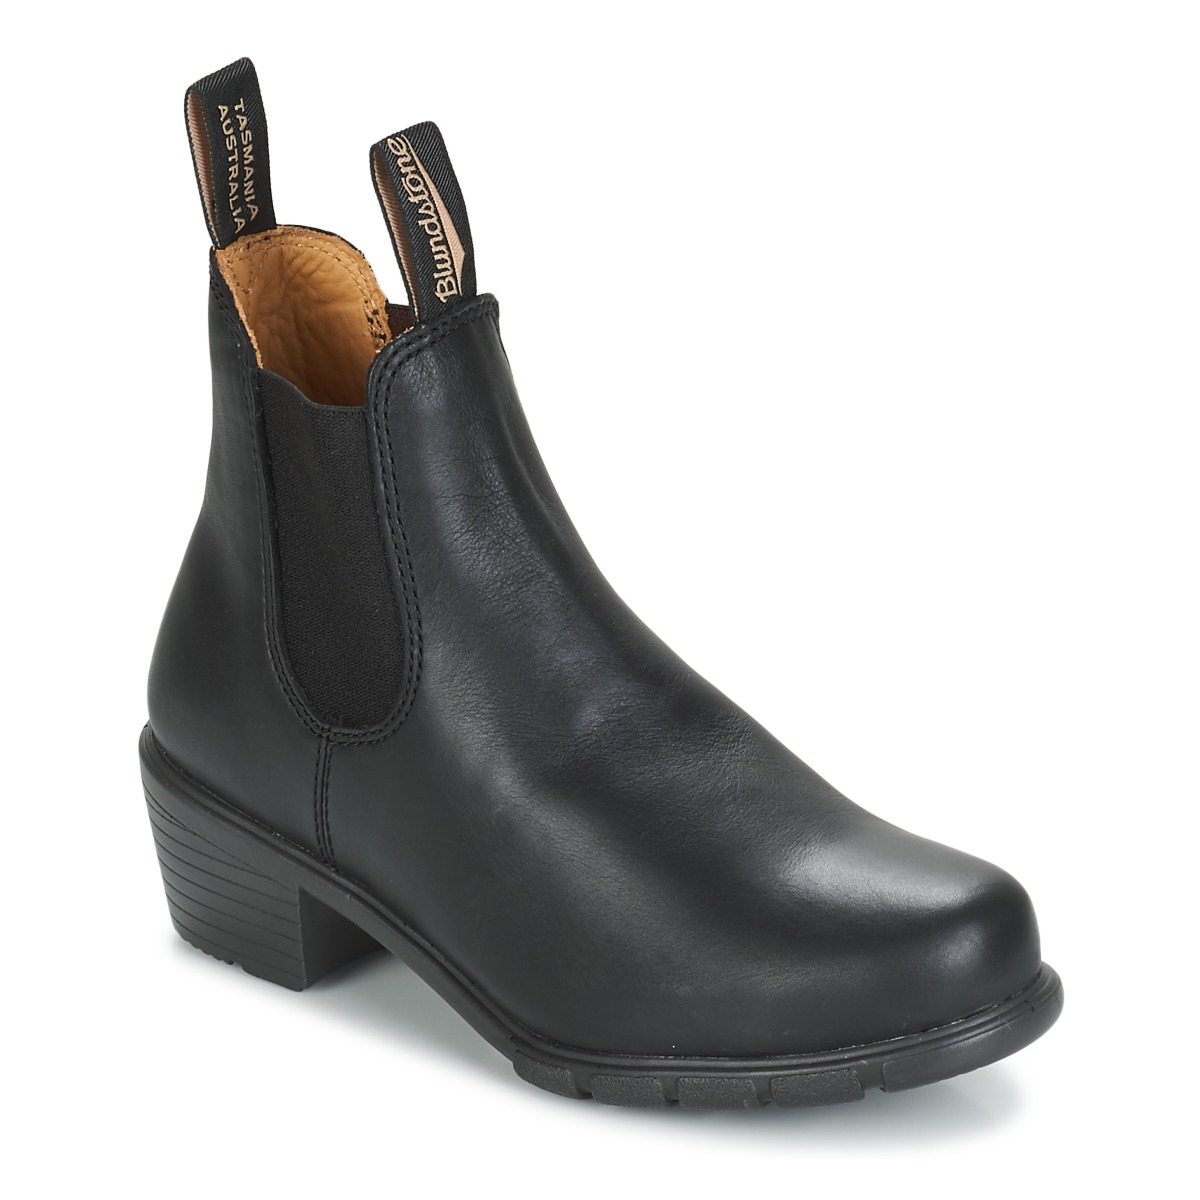 Blundstone Womens Heel Boot Black Fast Delivery With Spartoo Tas Lacoste Zip Basic Special Colours Europe Shoes Ankle Boots Women 18500